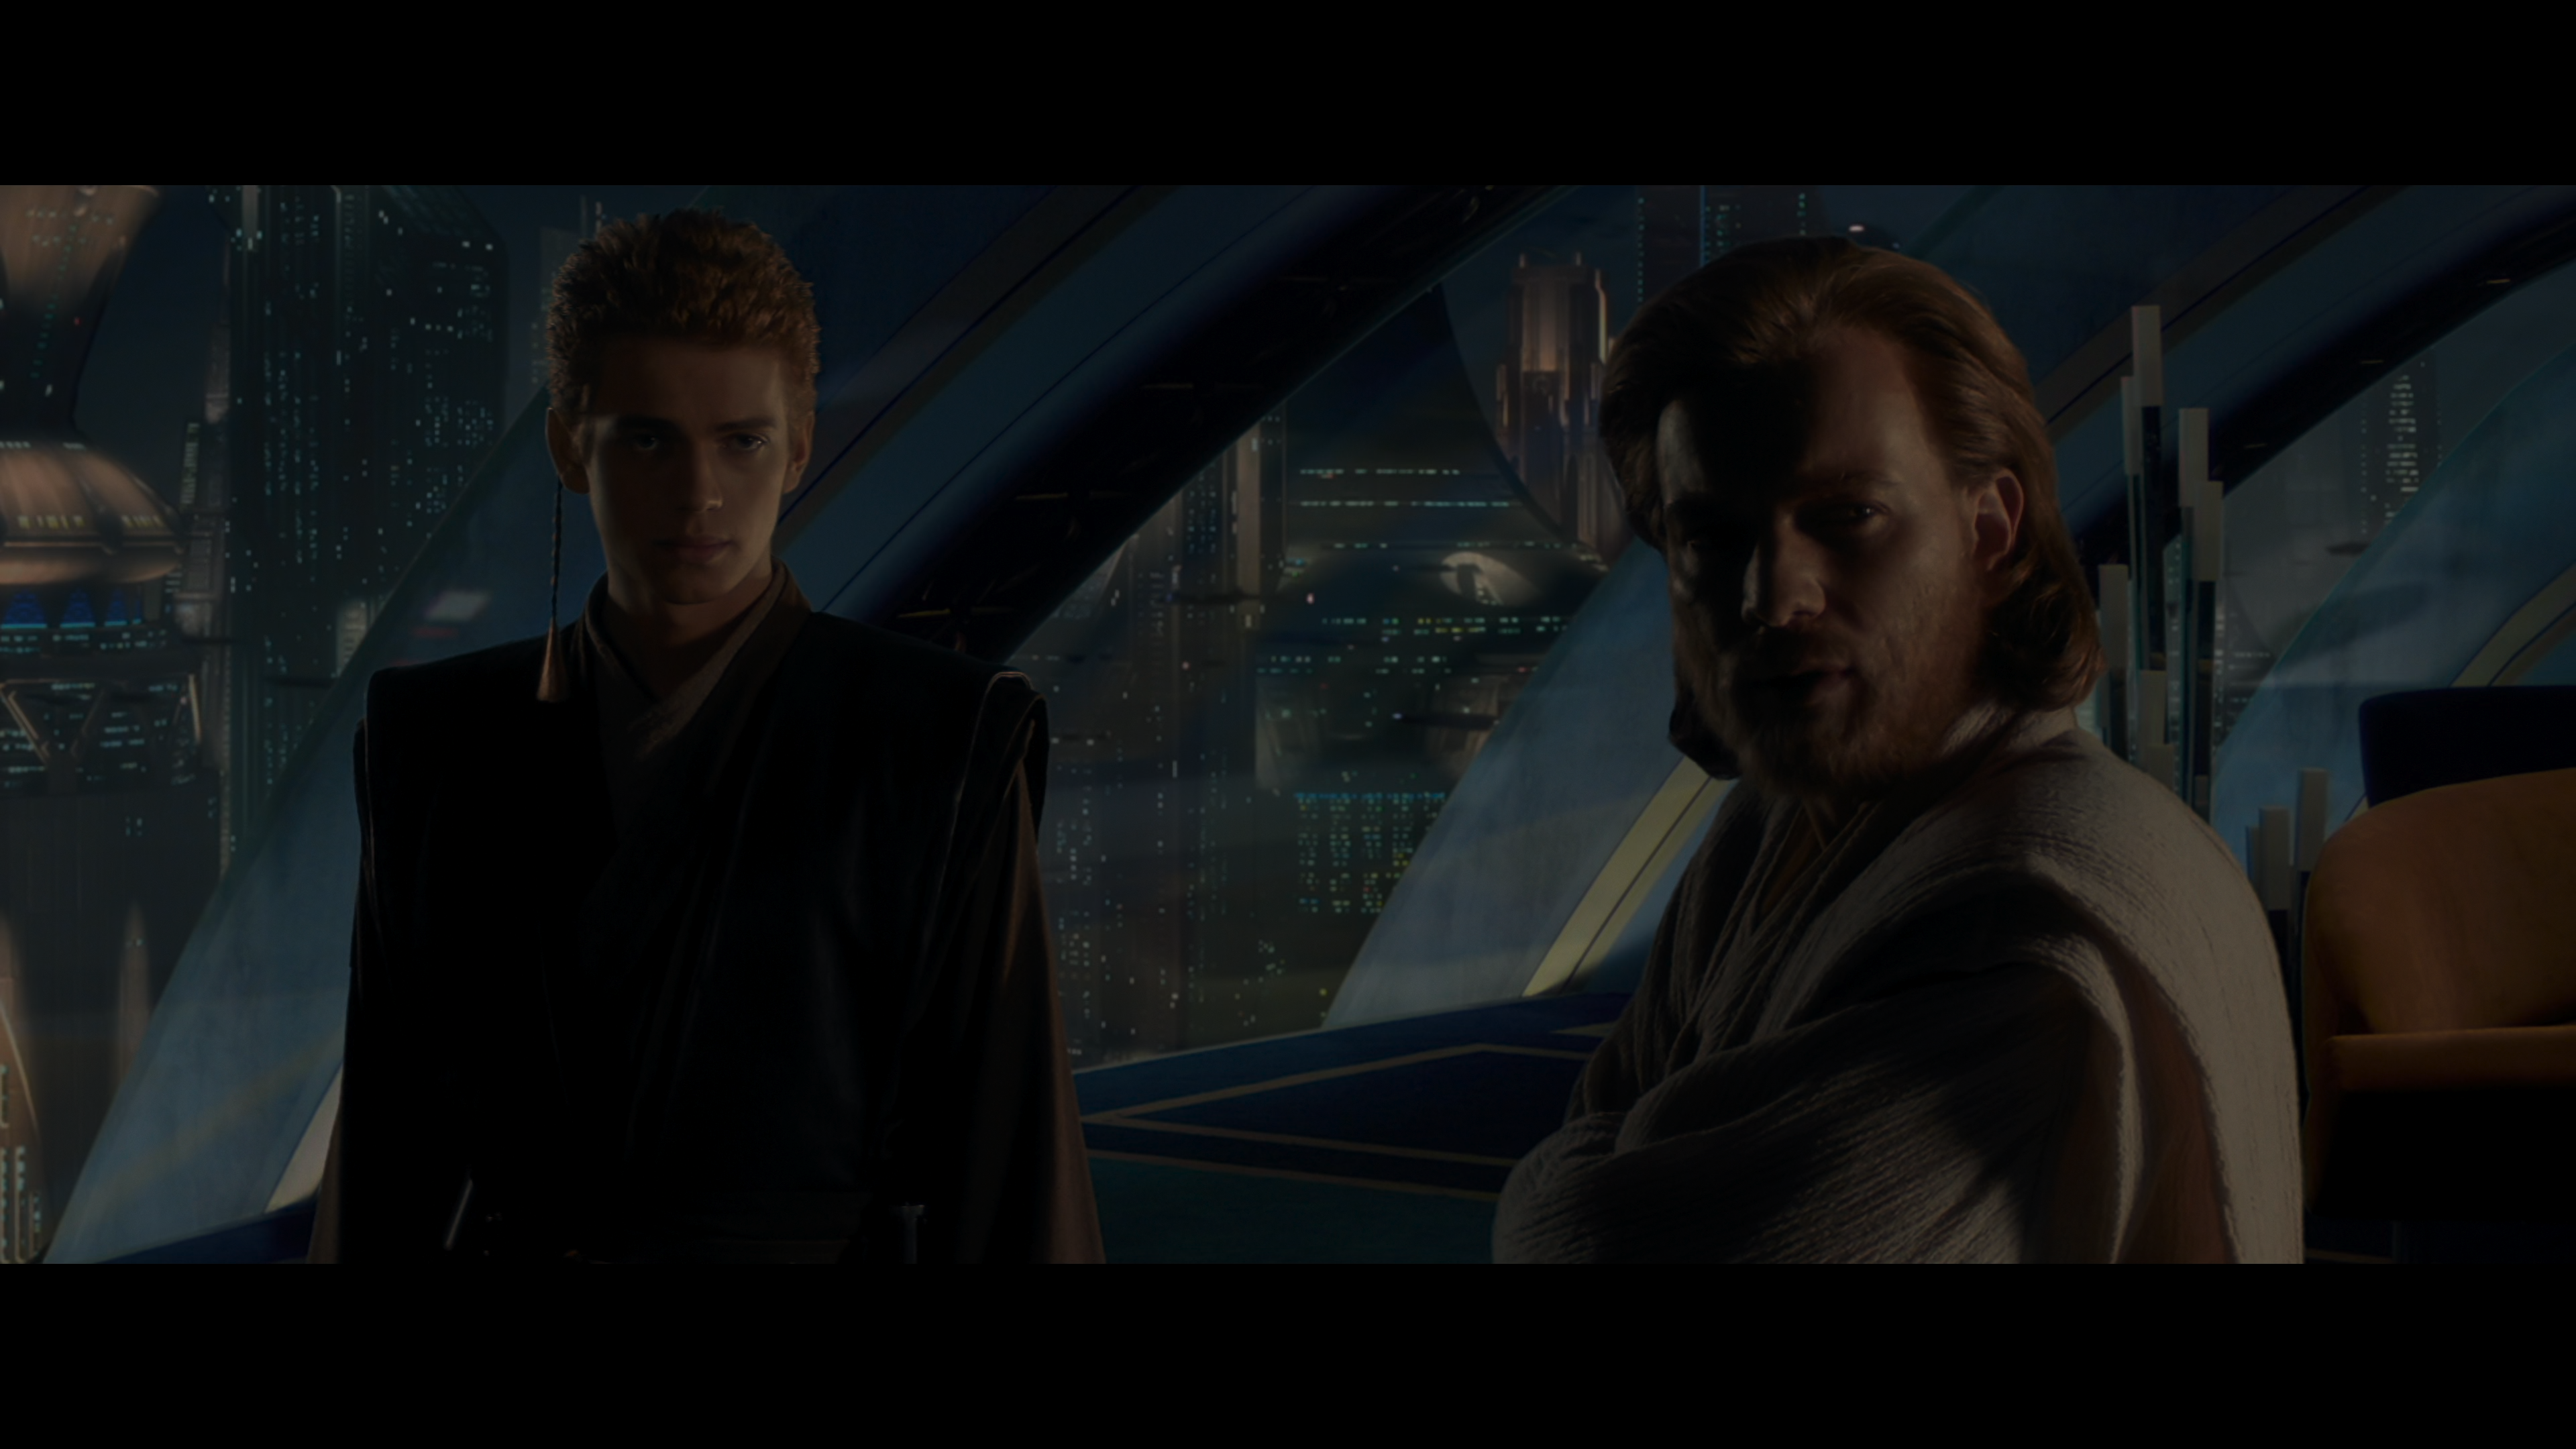 Star Wars Episode Ii Attack Of The Clones 2002 2160p Uhd Bluray Remux Hdr Hevc Atmos Pmp Ddlbase